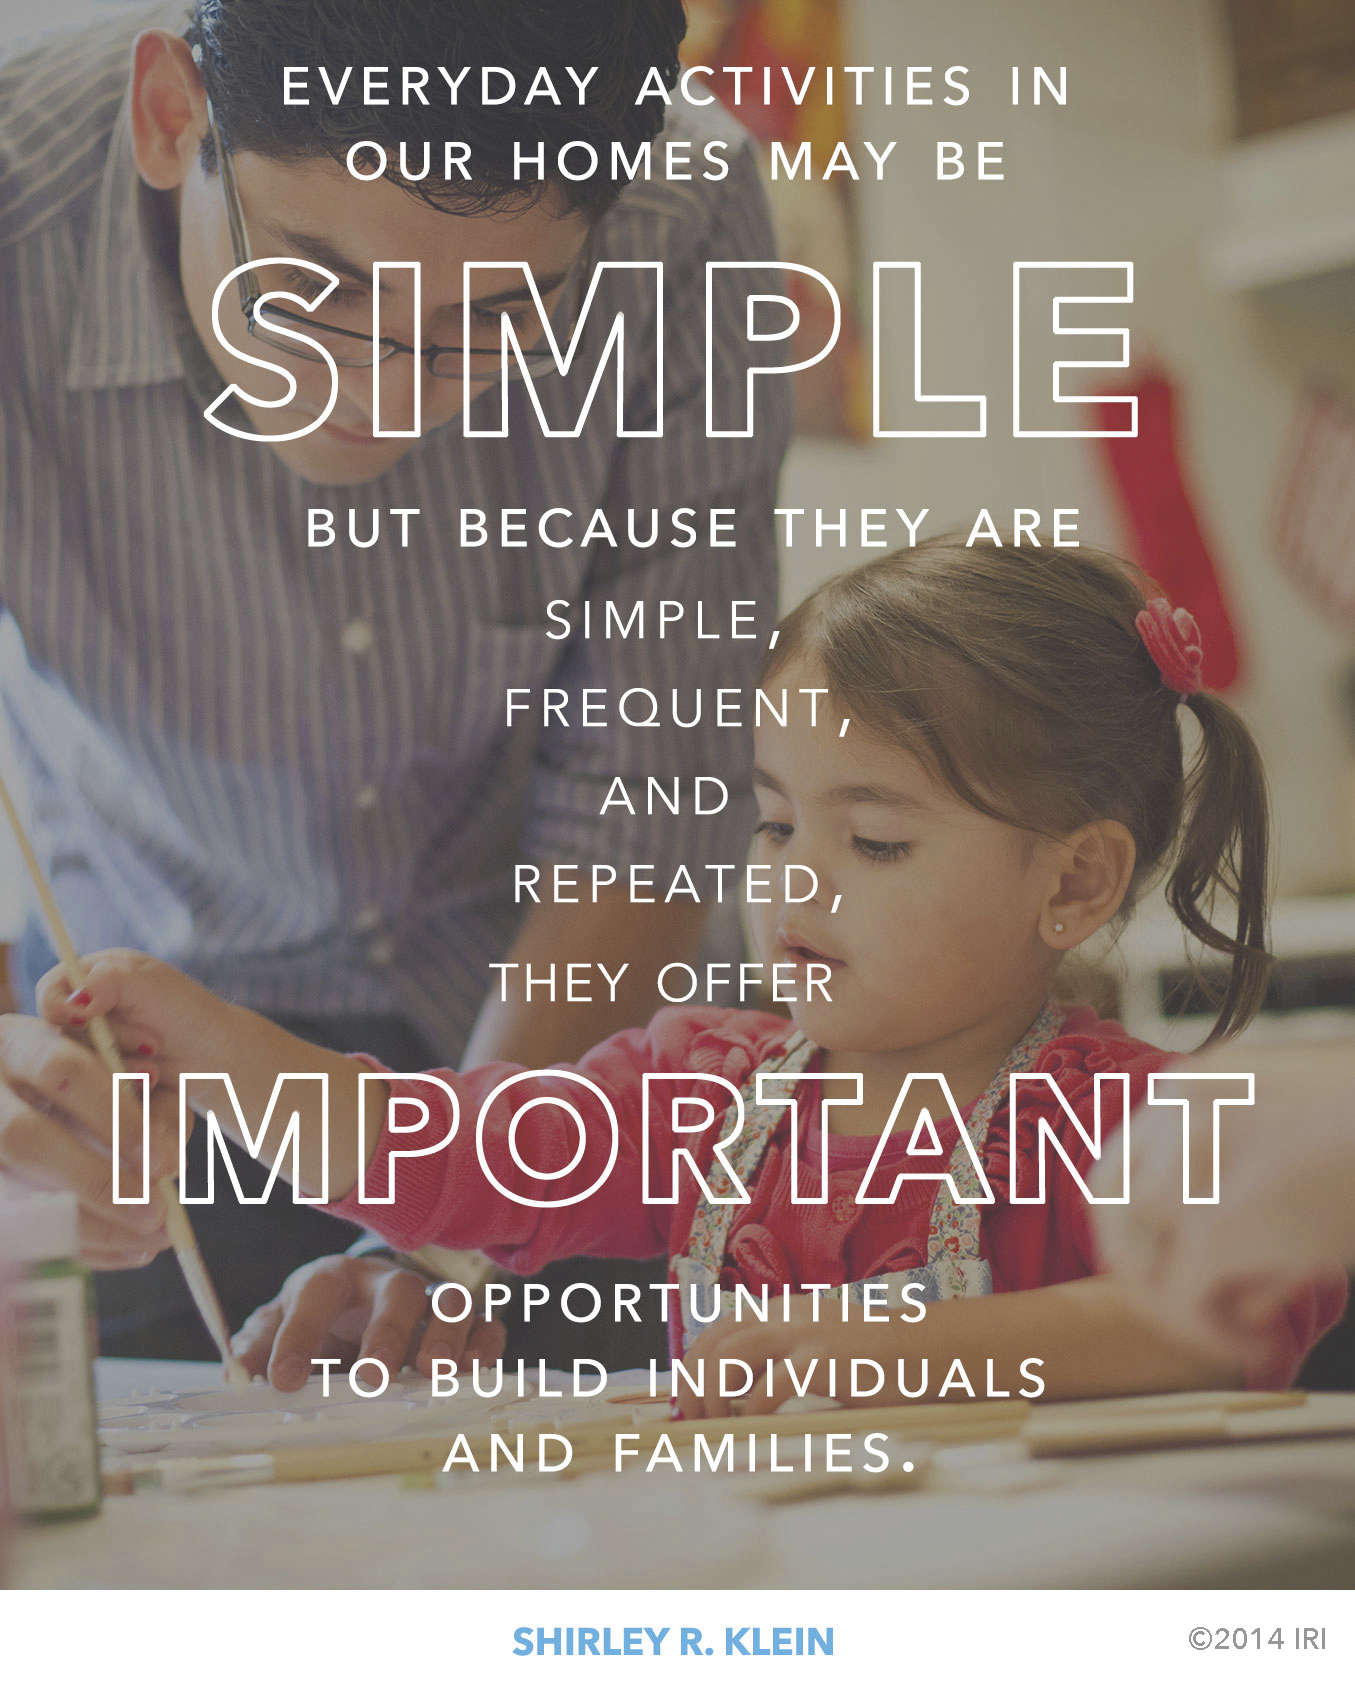 """""""Everyday activities in our homes may be simple but because they are simple, frequent, and repeated, they offer important opportunities to build individuals and families.""""—Shirley R. Klein, """"Three Tools to Build a Sacred Home"""""""